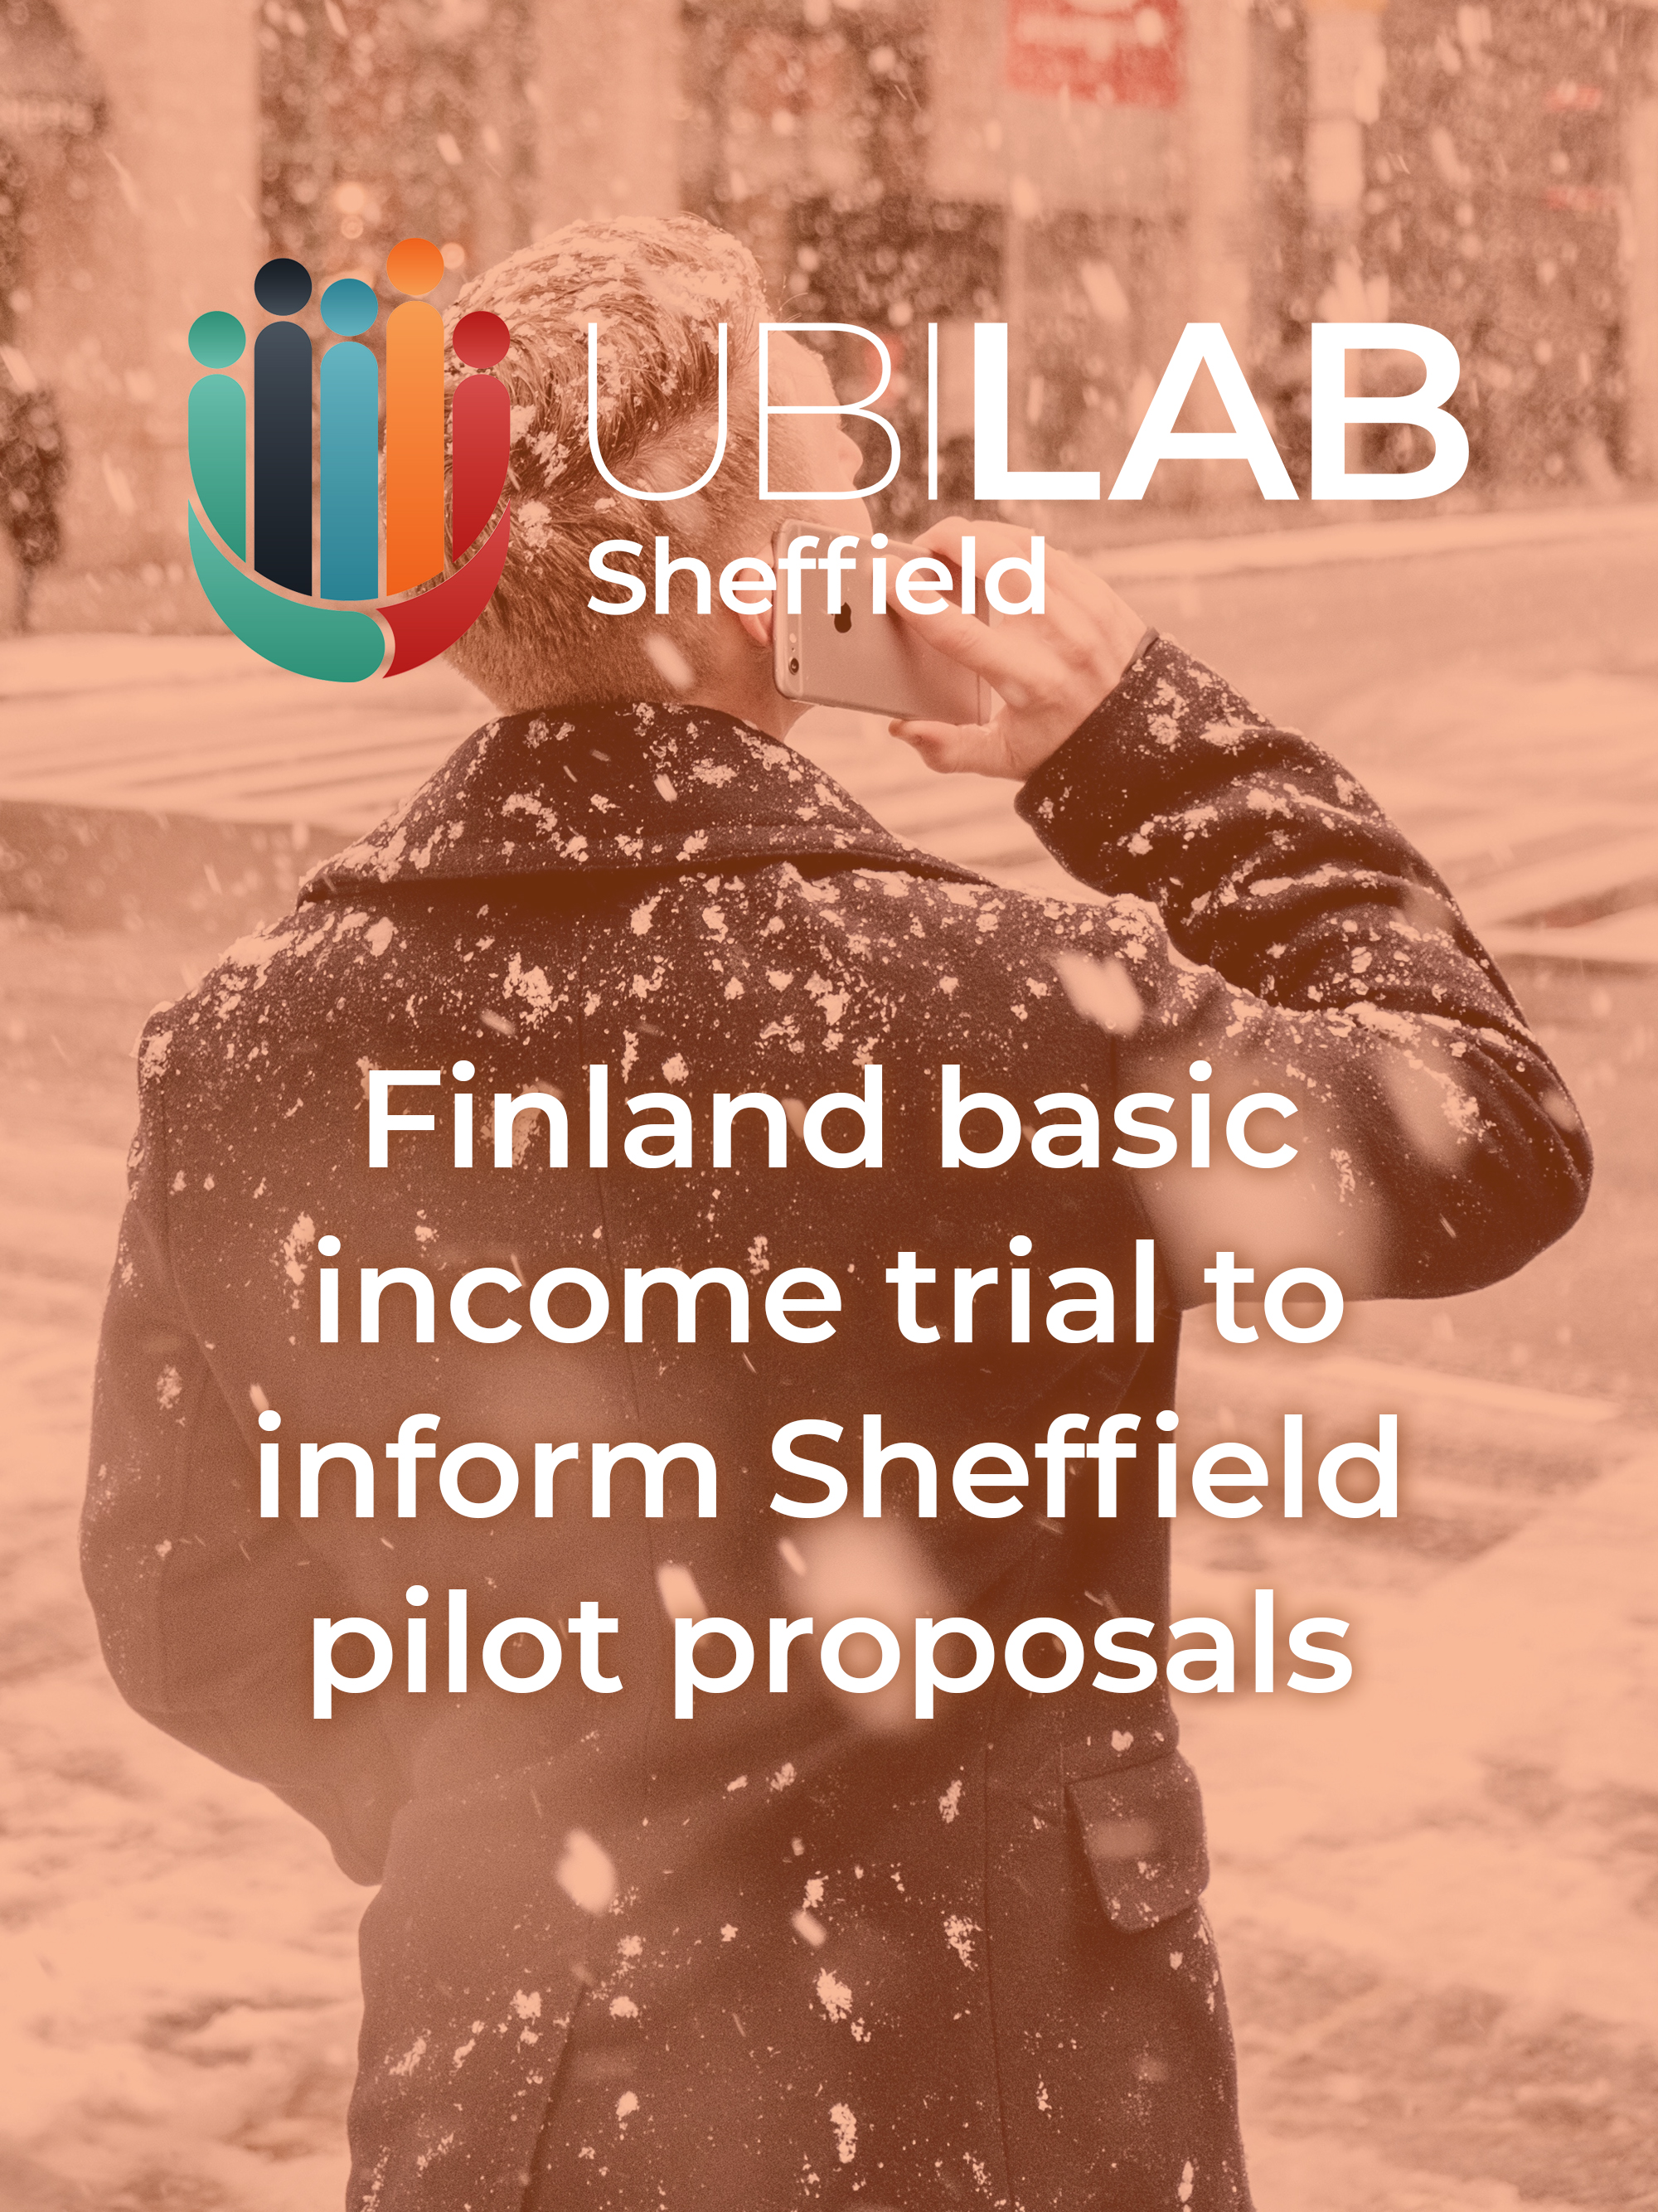 Finland basic income trial to inform Sheffield pilot proposals - 12th Feb 19 - Imagine every month you got a cheque for £500 through the post. Whether you were in work or not, no application forms required.